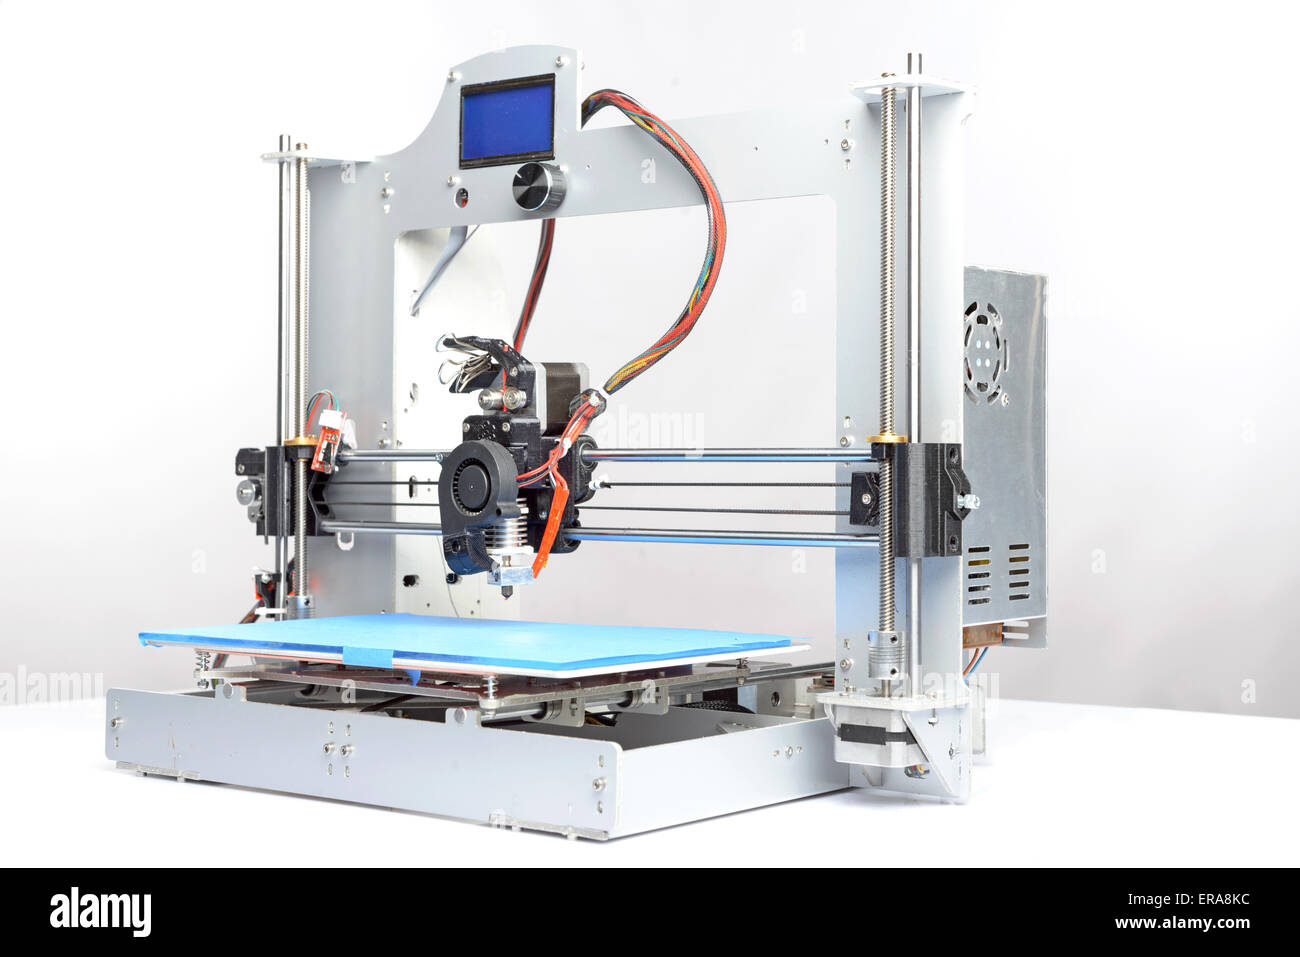 Picture of a three-dimensional printer - Stock Image